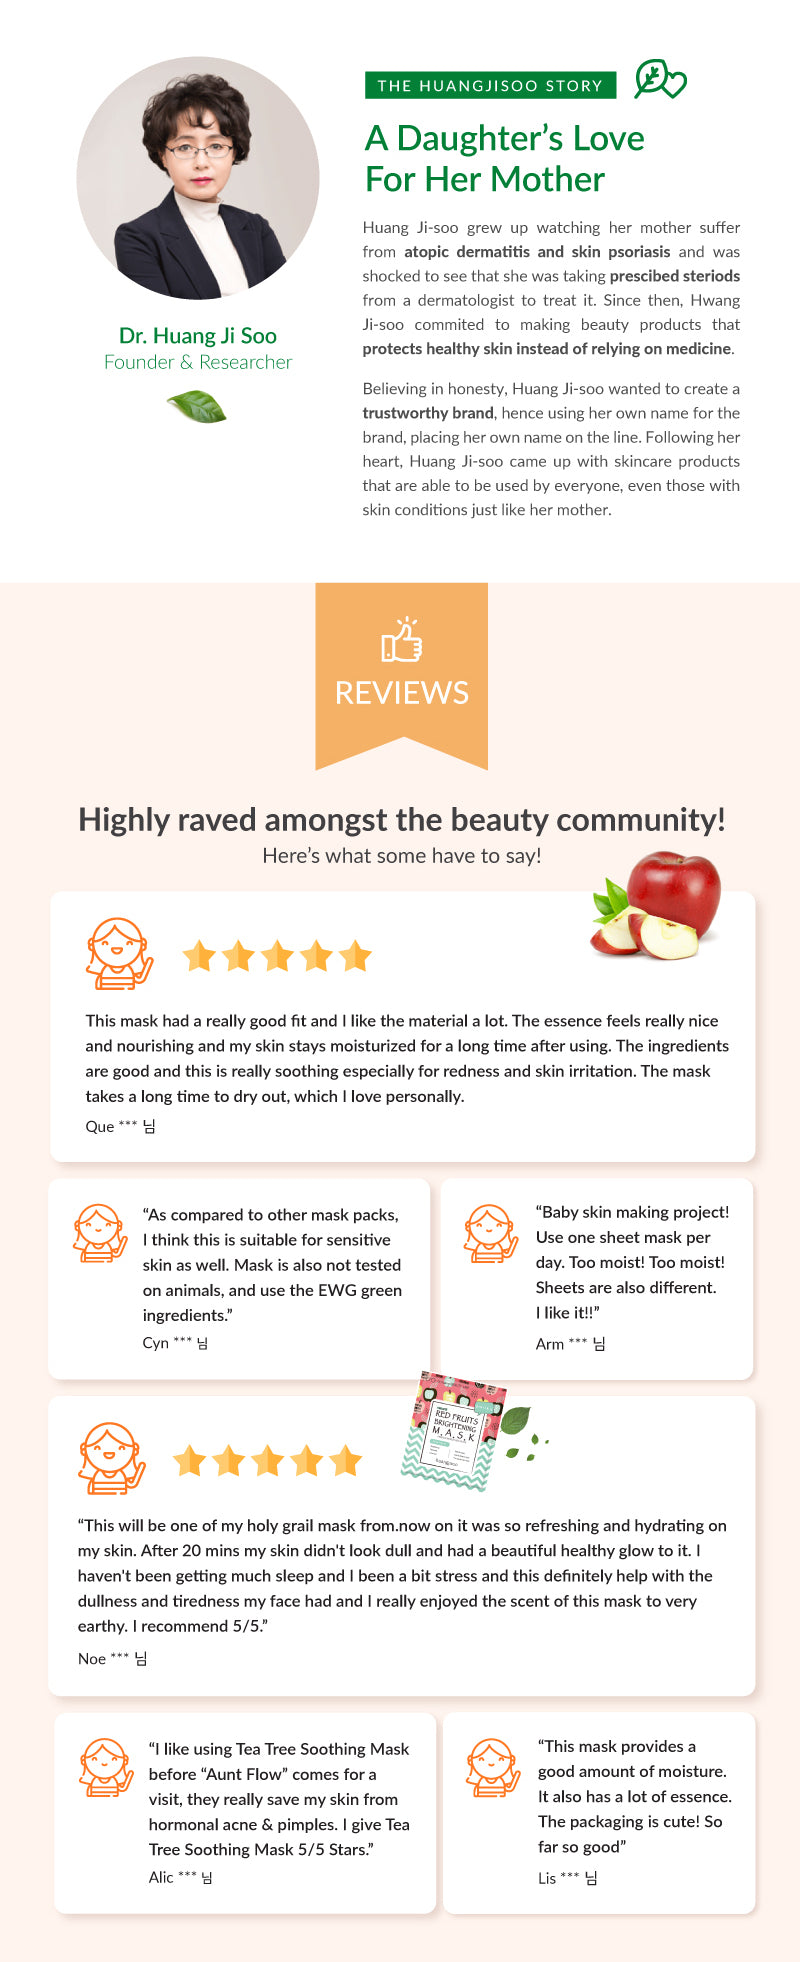 Dr. Huang Ji Soo created the brand Huangjisoo out of heart to help your mother's skin. Despite trying various dermatological skincare she decided to create her own brand to solve her mother's skin issues. Check out Huangjisoo Facial Mask reviews used by fellow beauty community